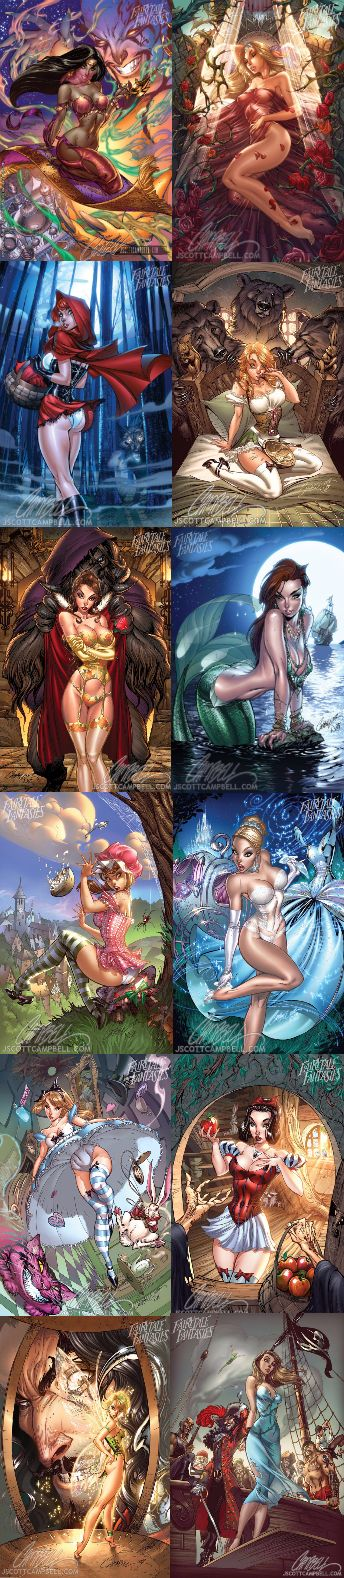 J. Scott Campbell's Fairytale Fantasies, no link :(